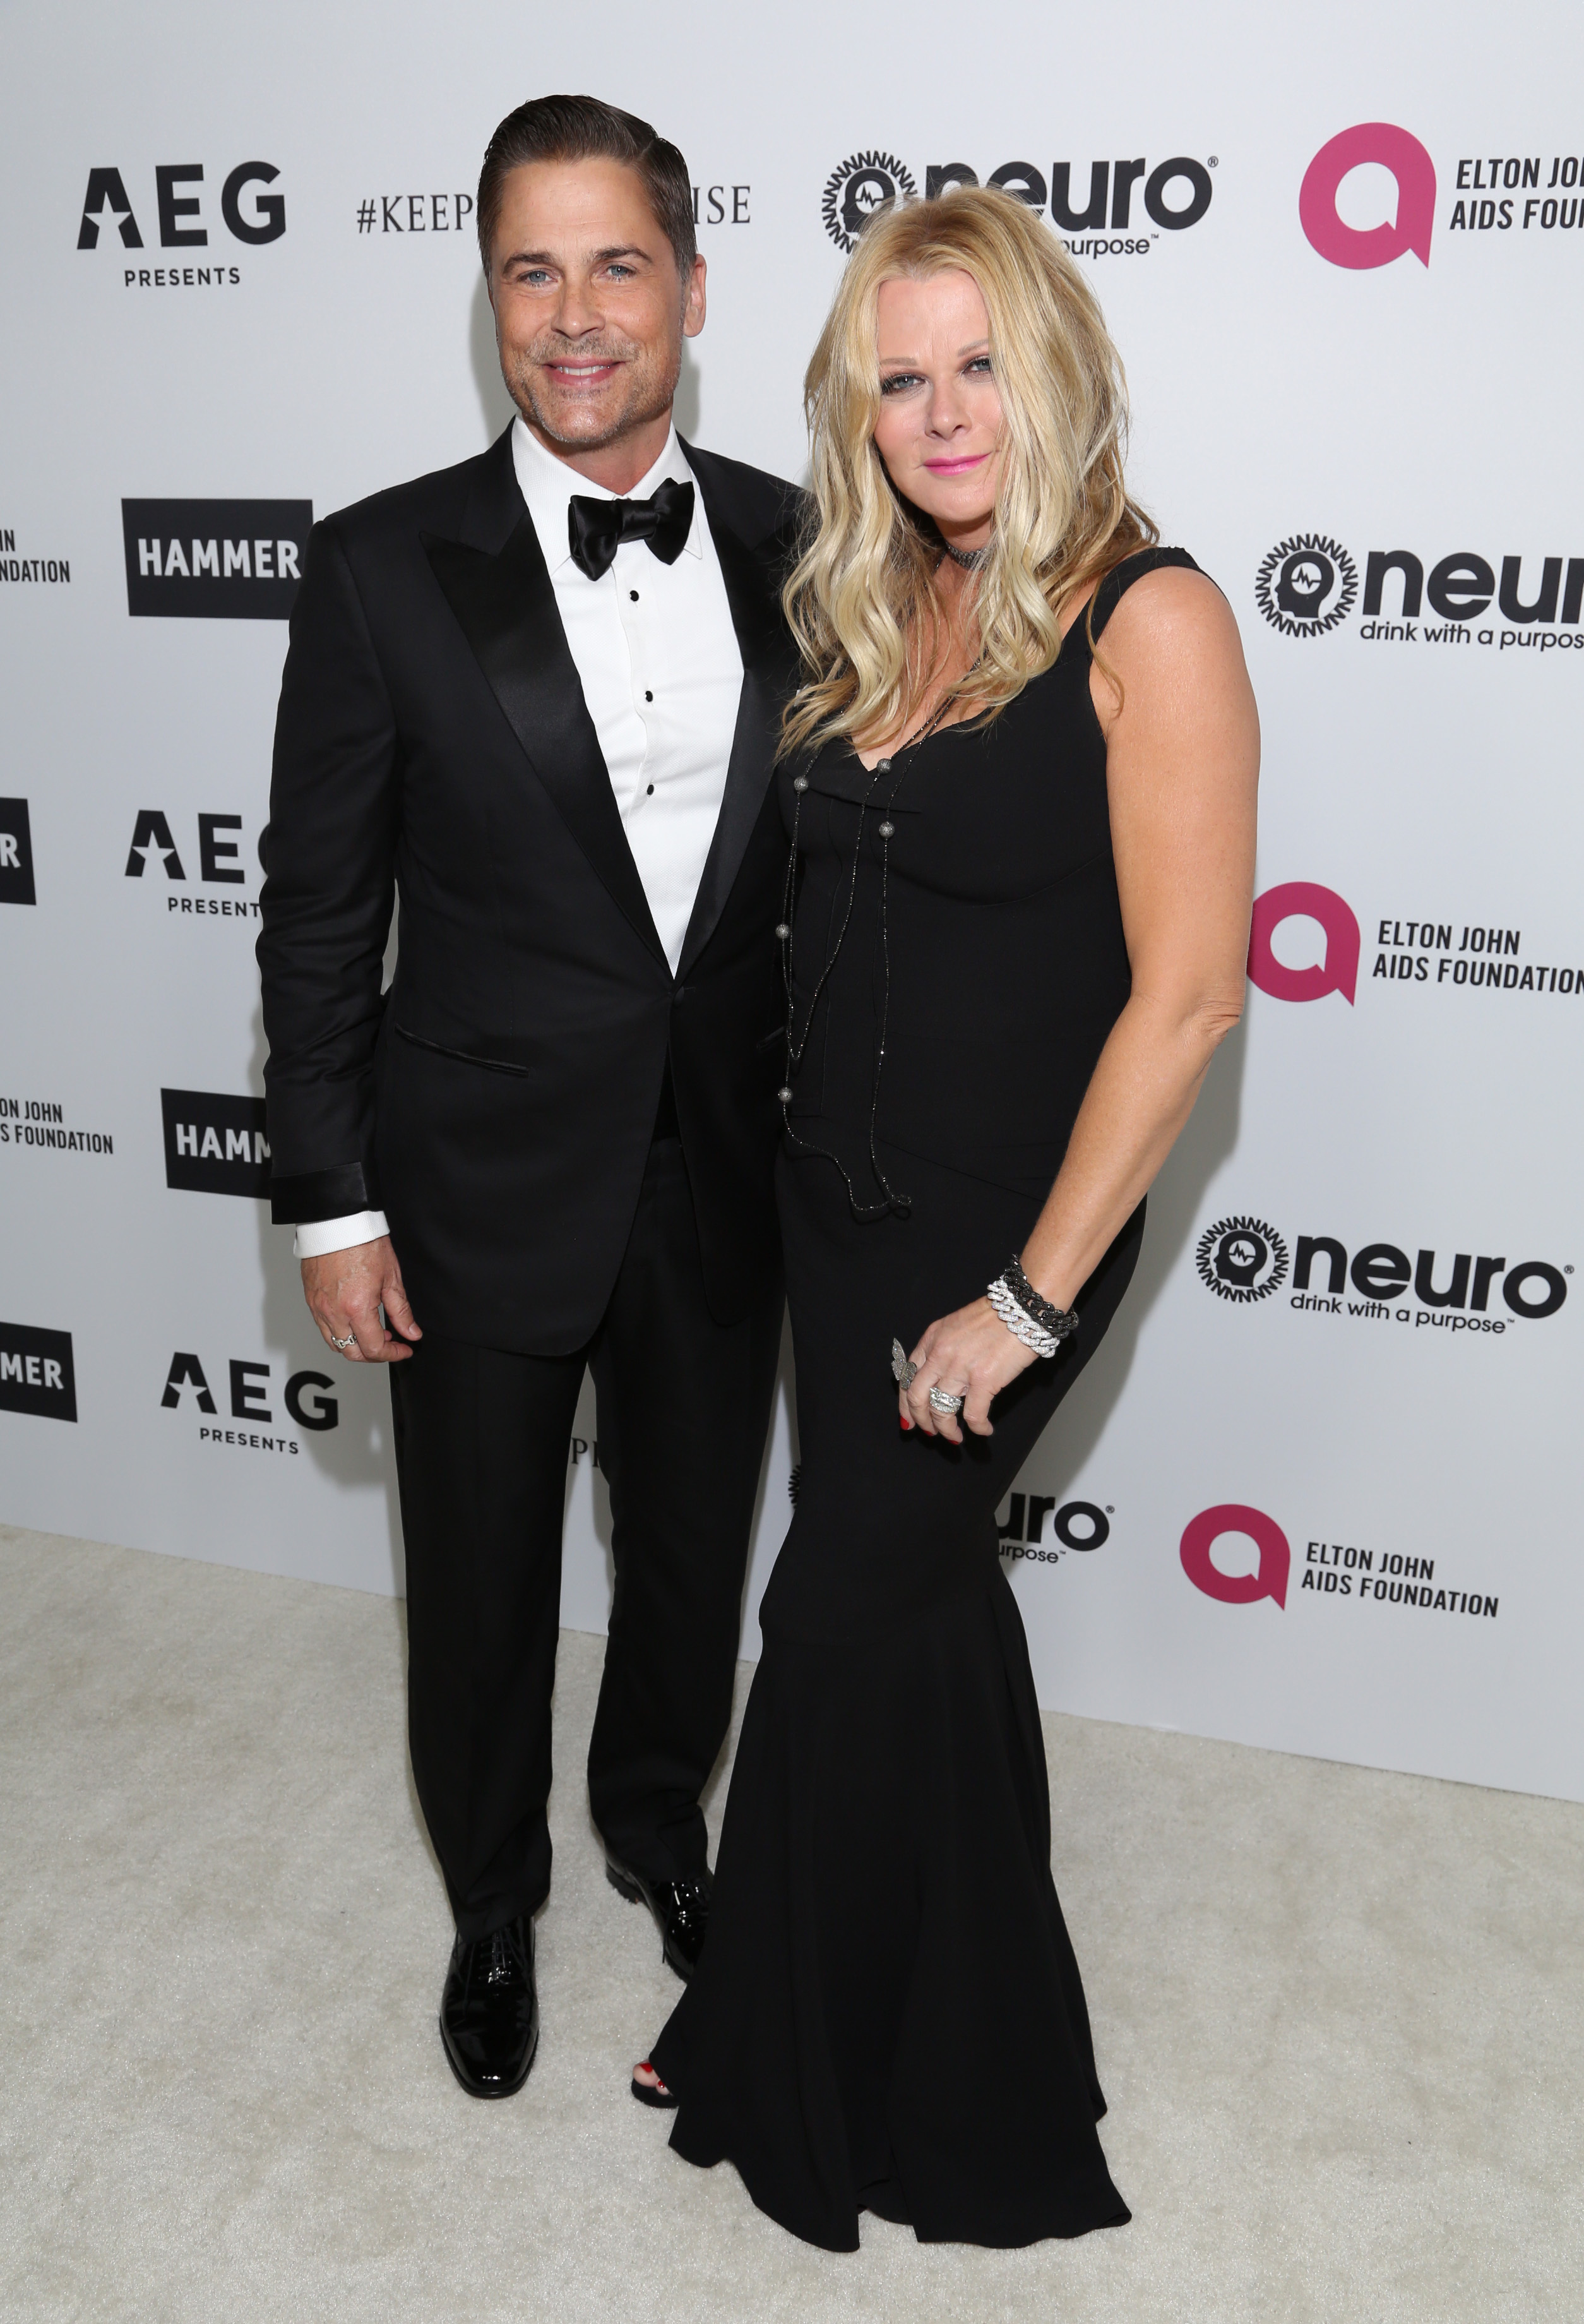 Rob Lowe and wife Sheryl Berkoff attend Elton John's 70th birthday party in Los Angeles on March 25, 2017.